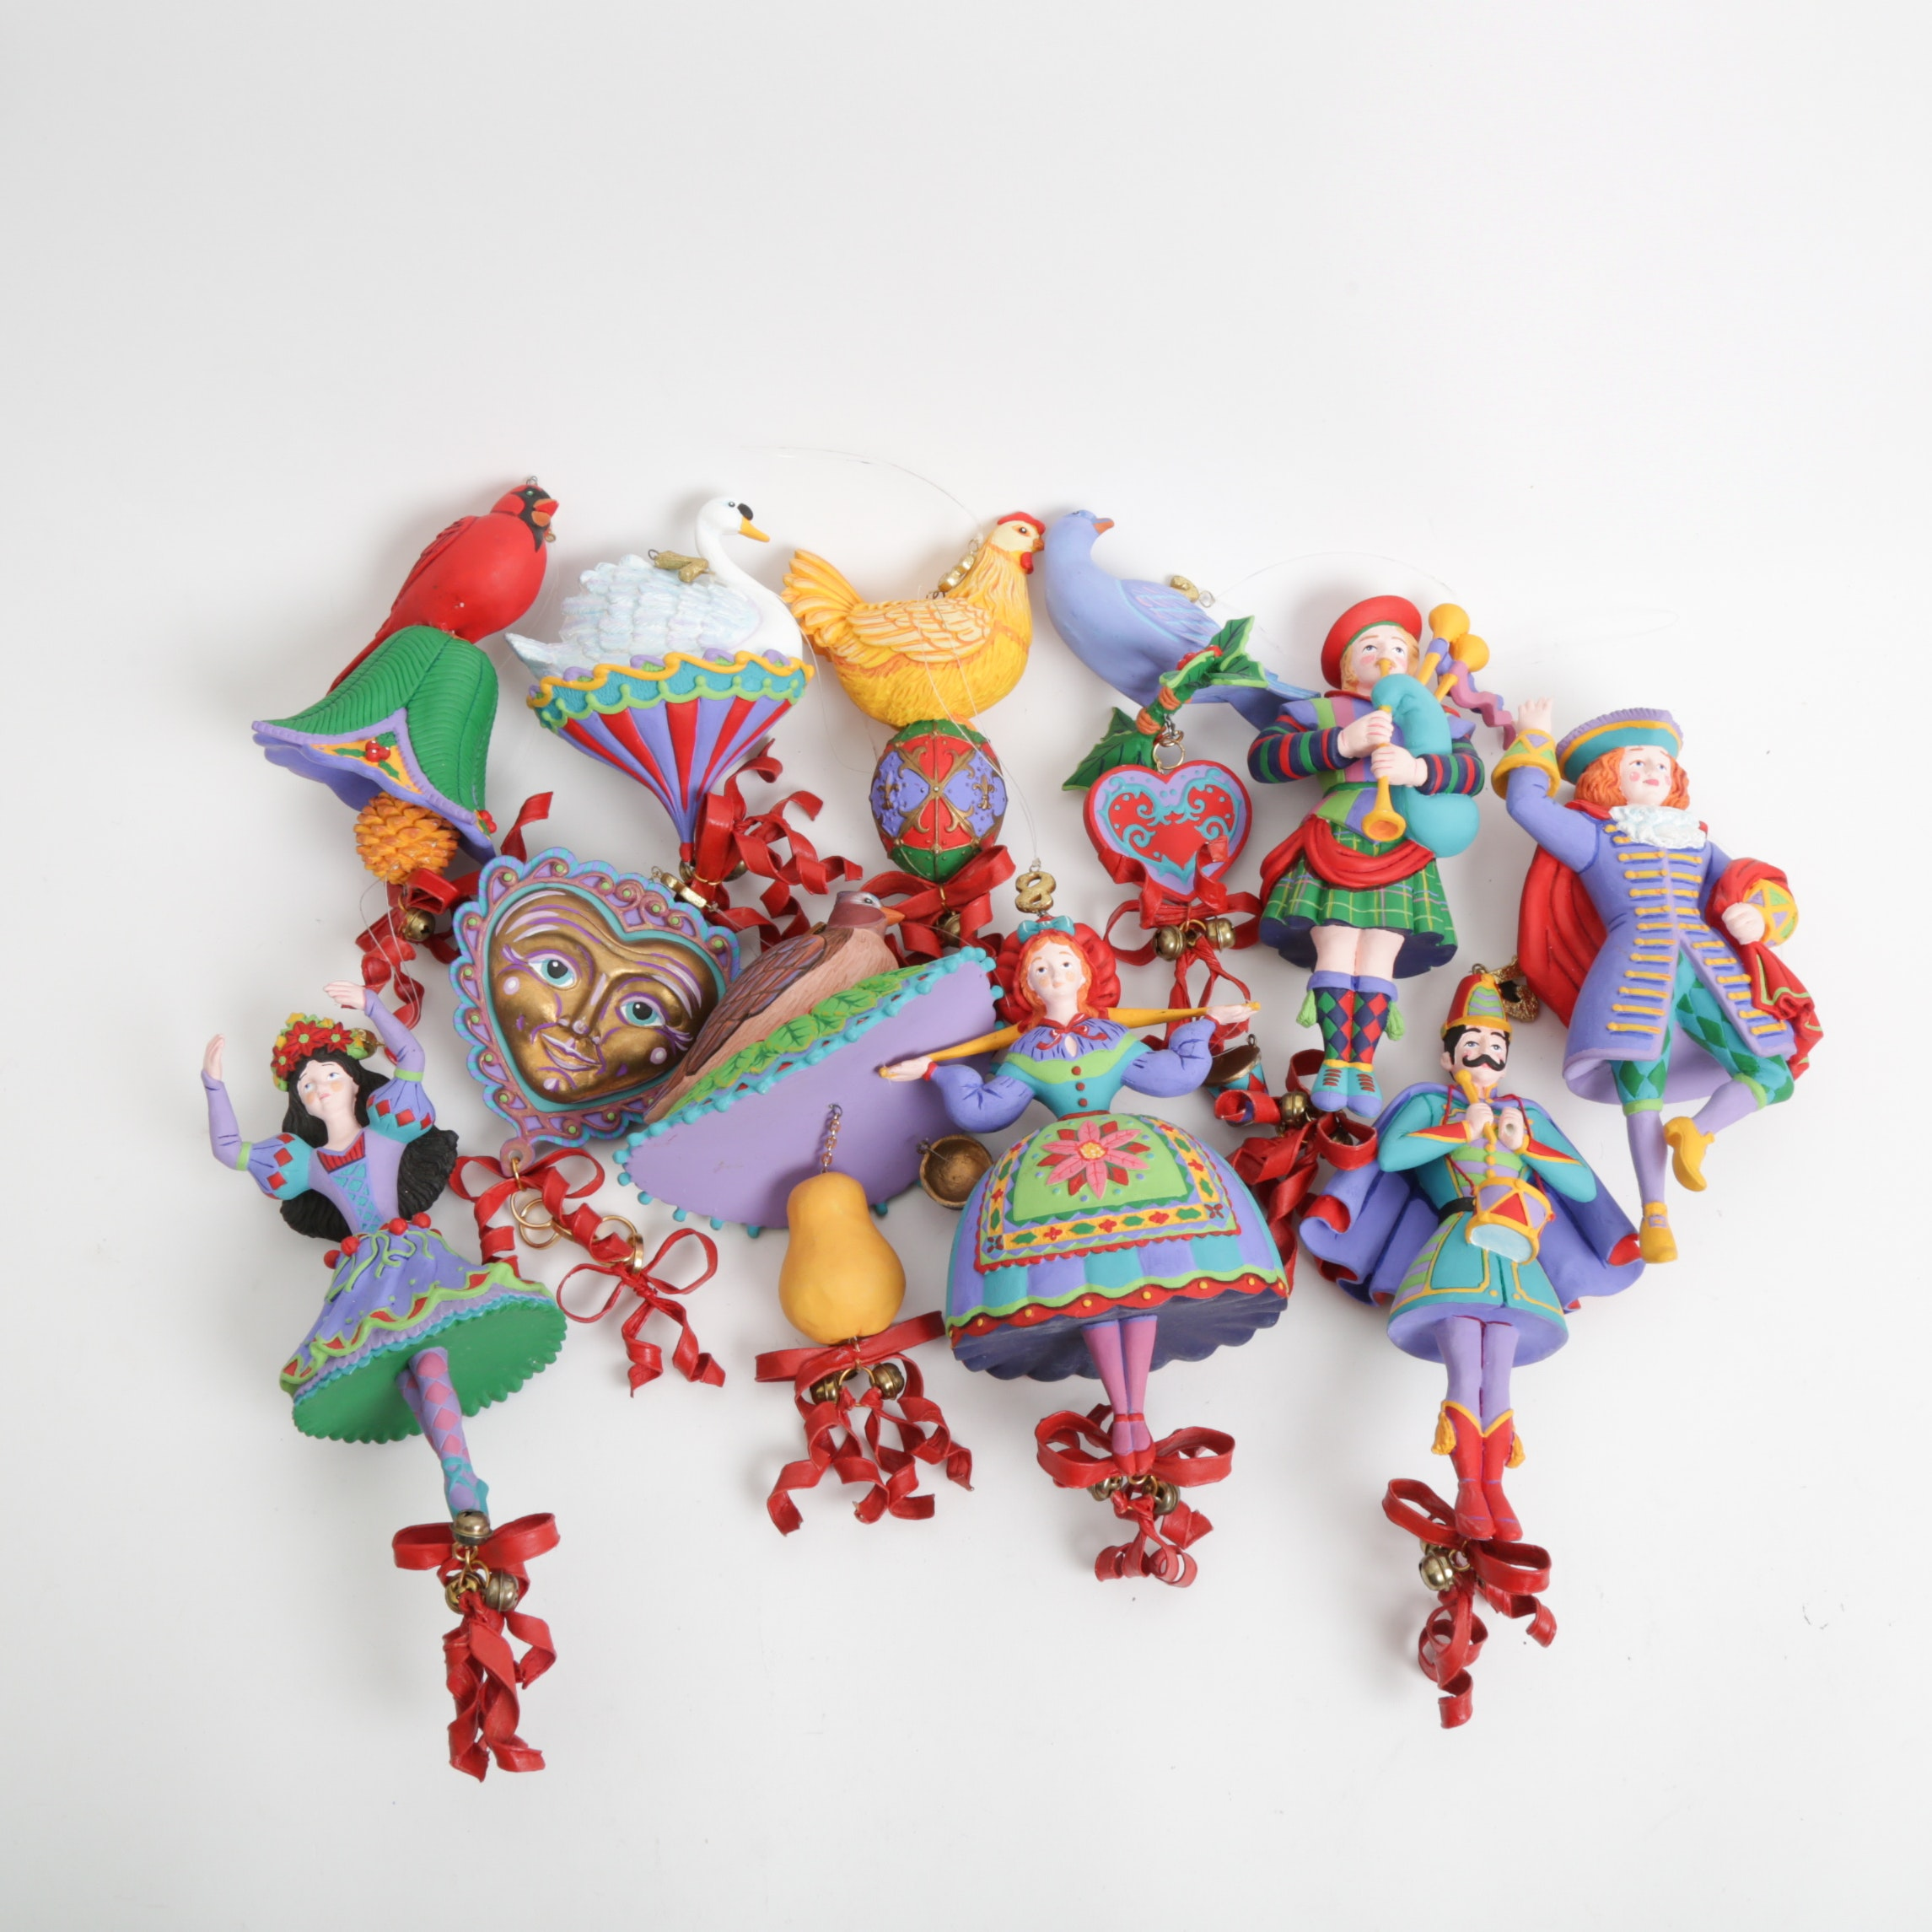 """Department 56 """"12 Days of Christmas"""" Ornaments"""